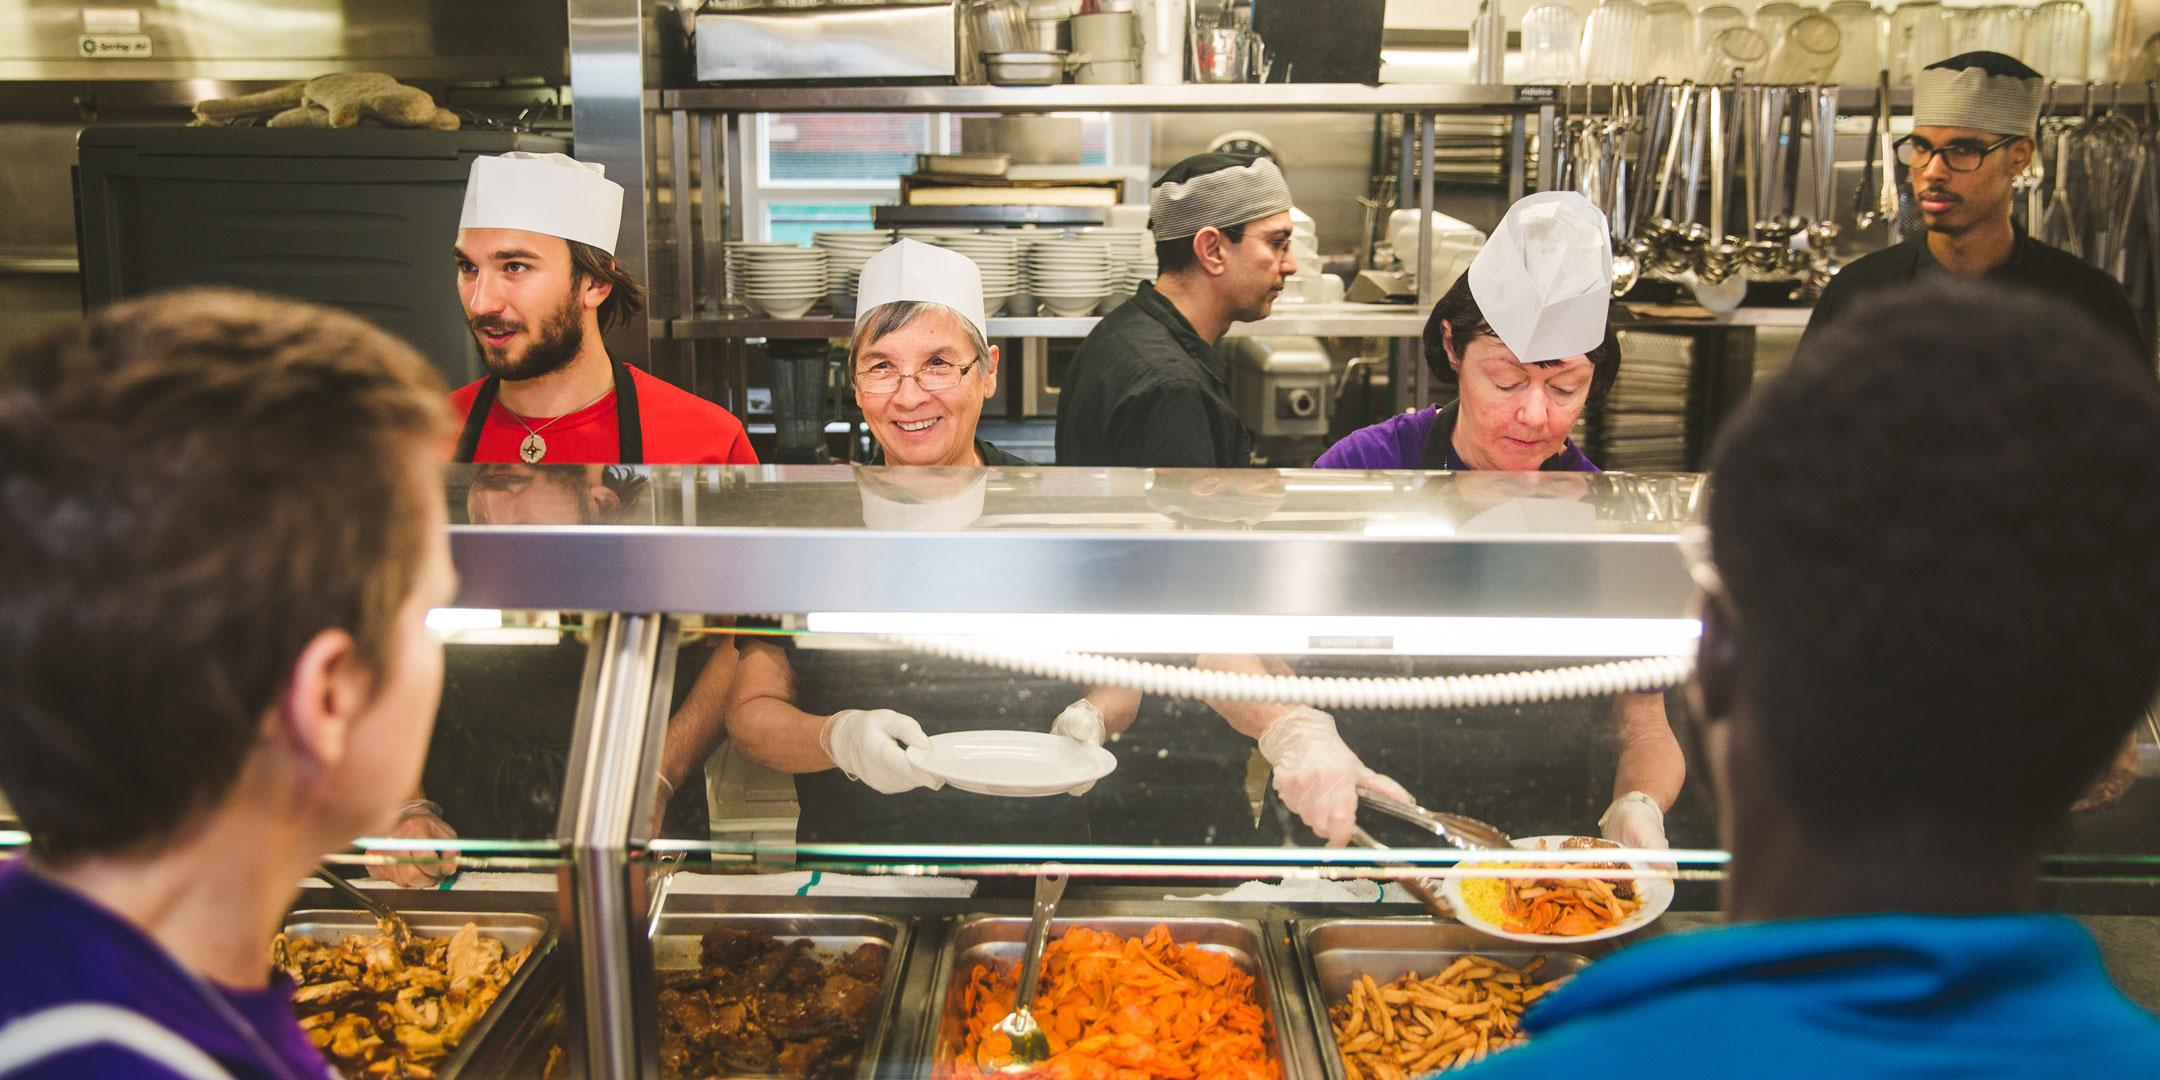 Help Serve Easter Dinner At The Ottawa Mission With YPN